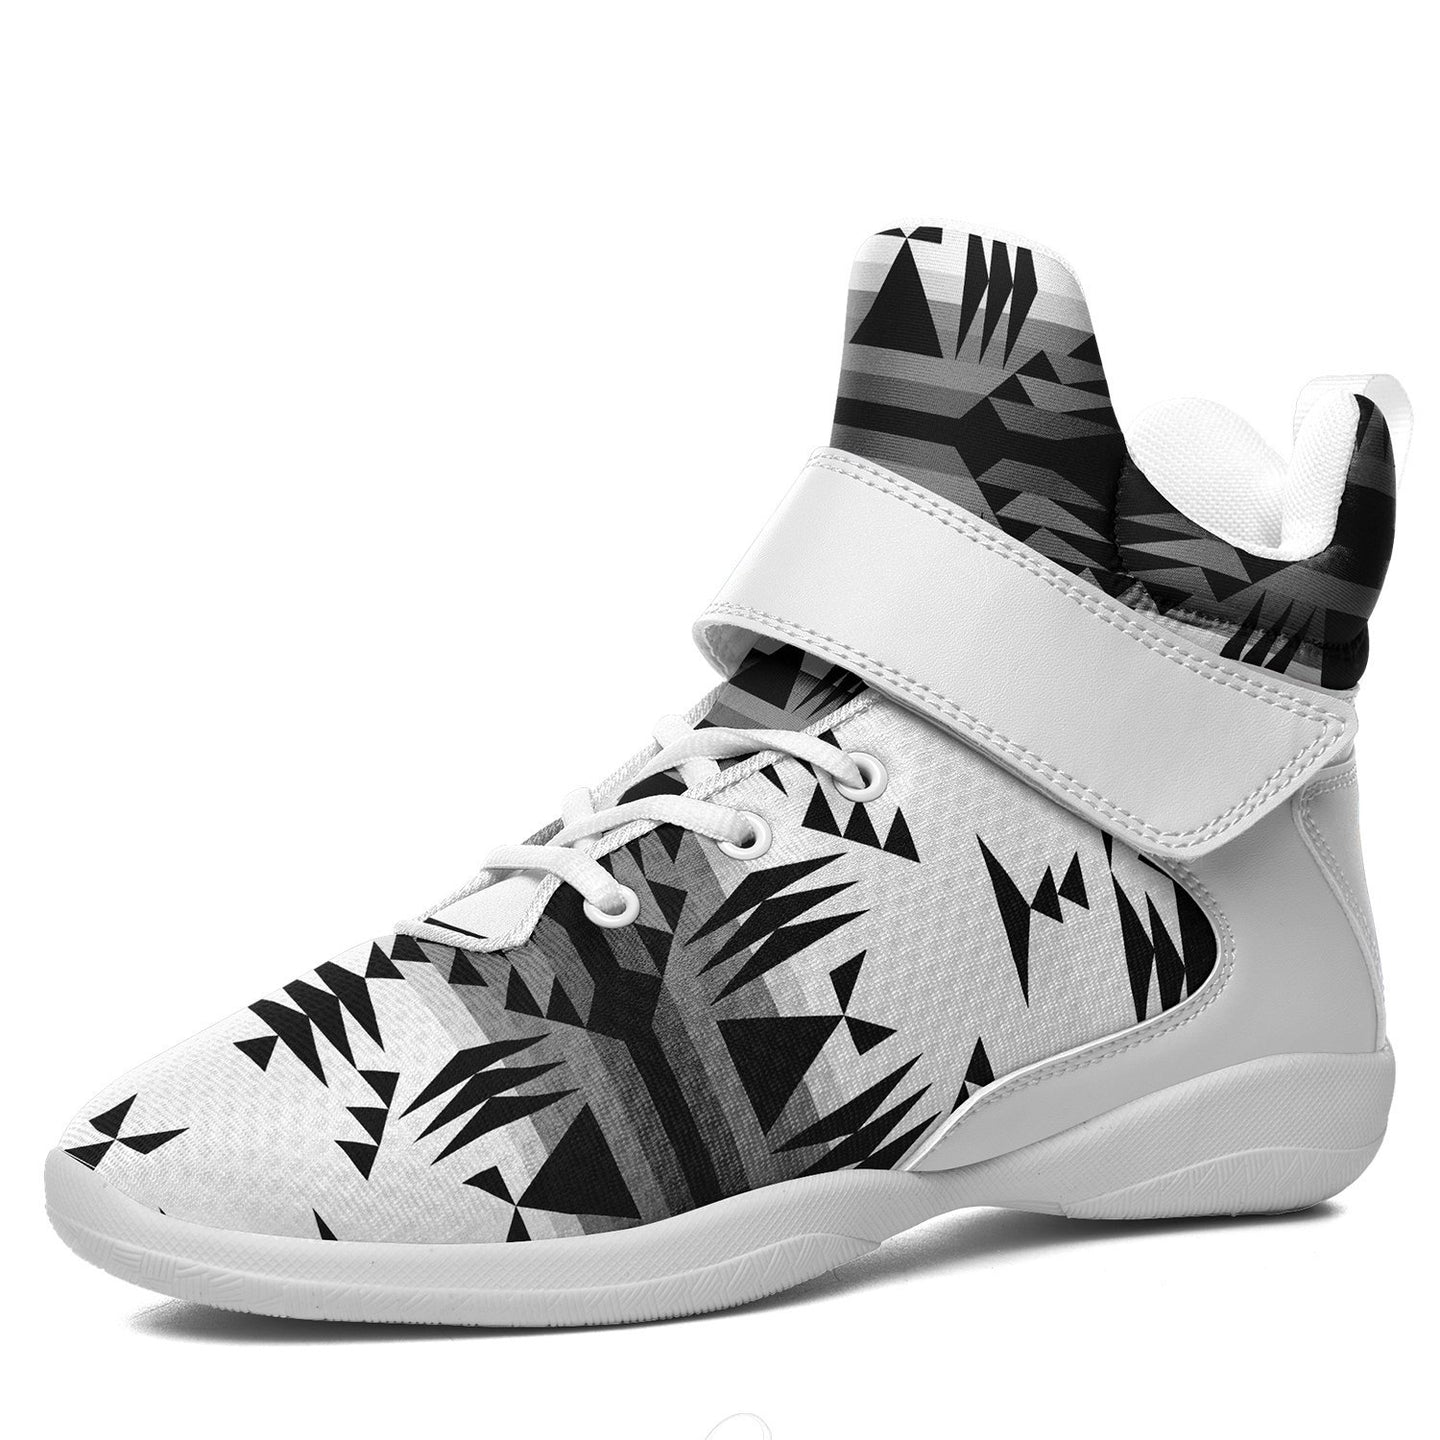 Between the Mountains White and Black Kid's Ipottaa Basketball / Sport High Top Shoes 49 Dzine US Child 12.5 / EUR 30 White Sole with White Strap